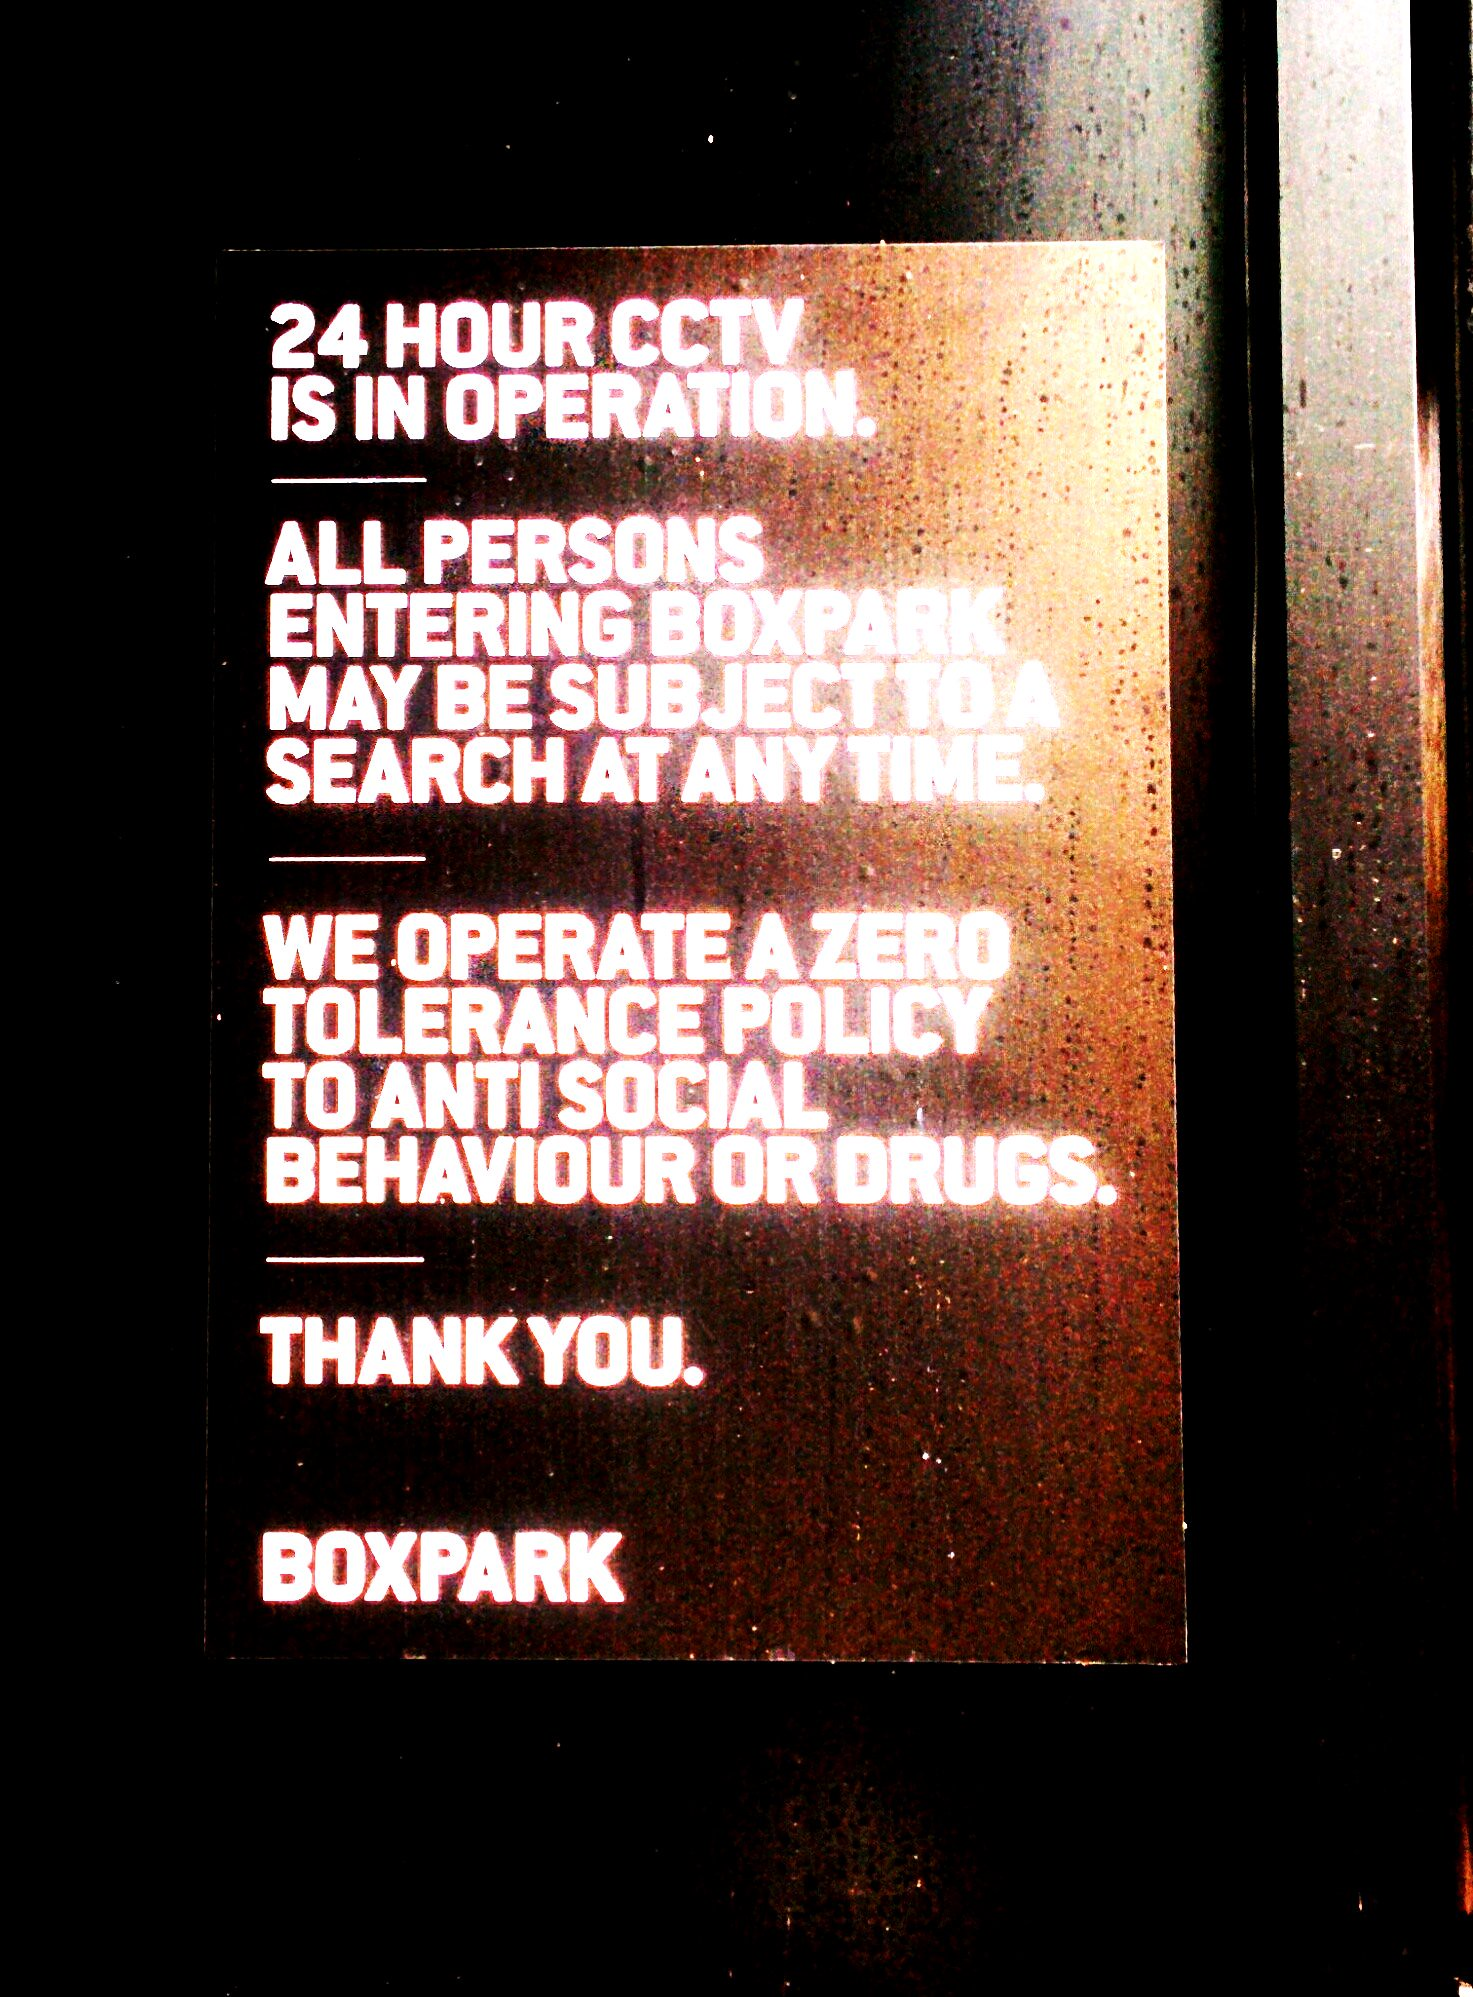 Dick and Jane visit Box Park, in the Surveillance State.